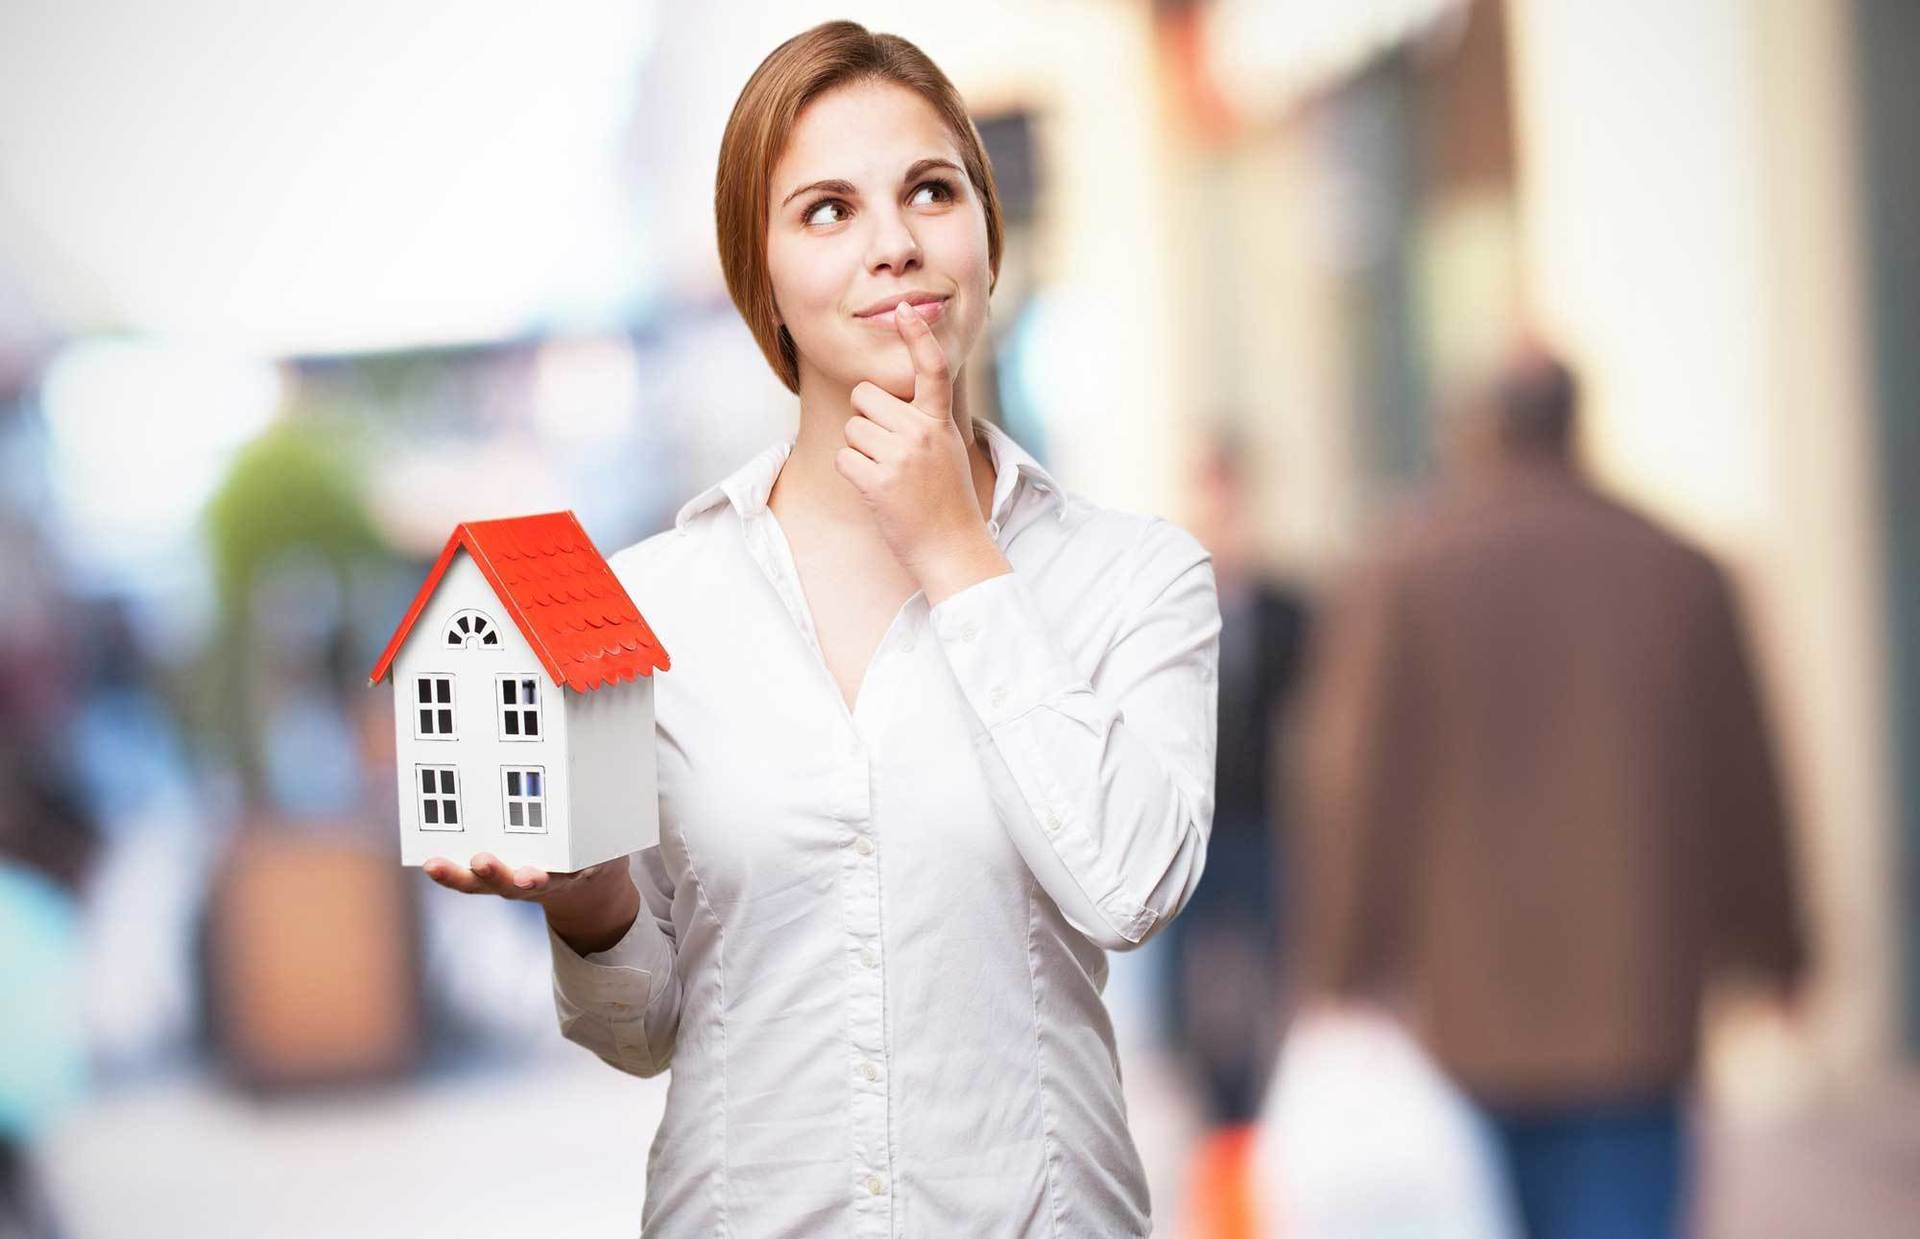 Things You Should Not Do When Buying a Home